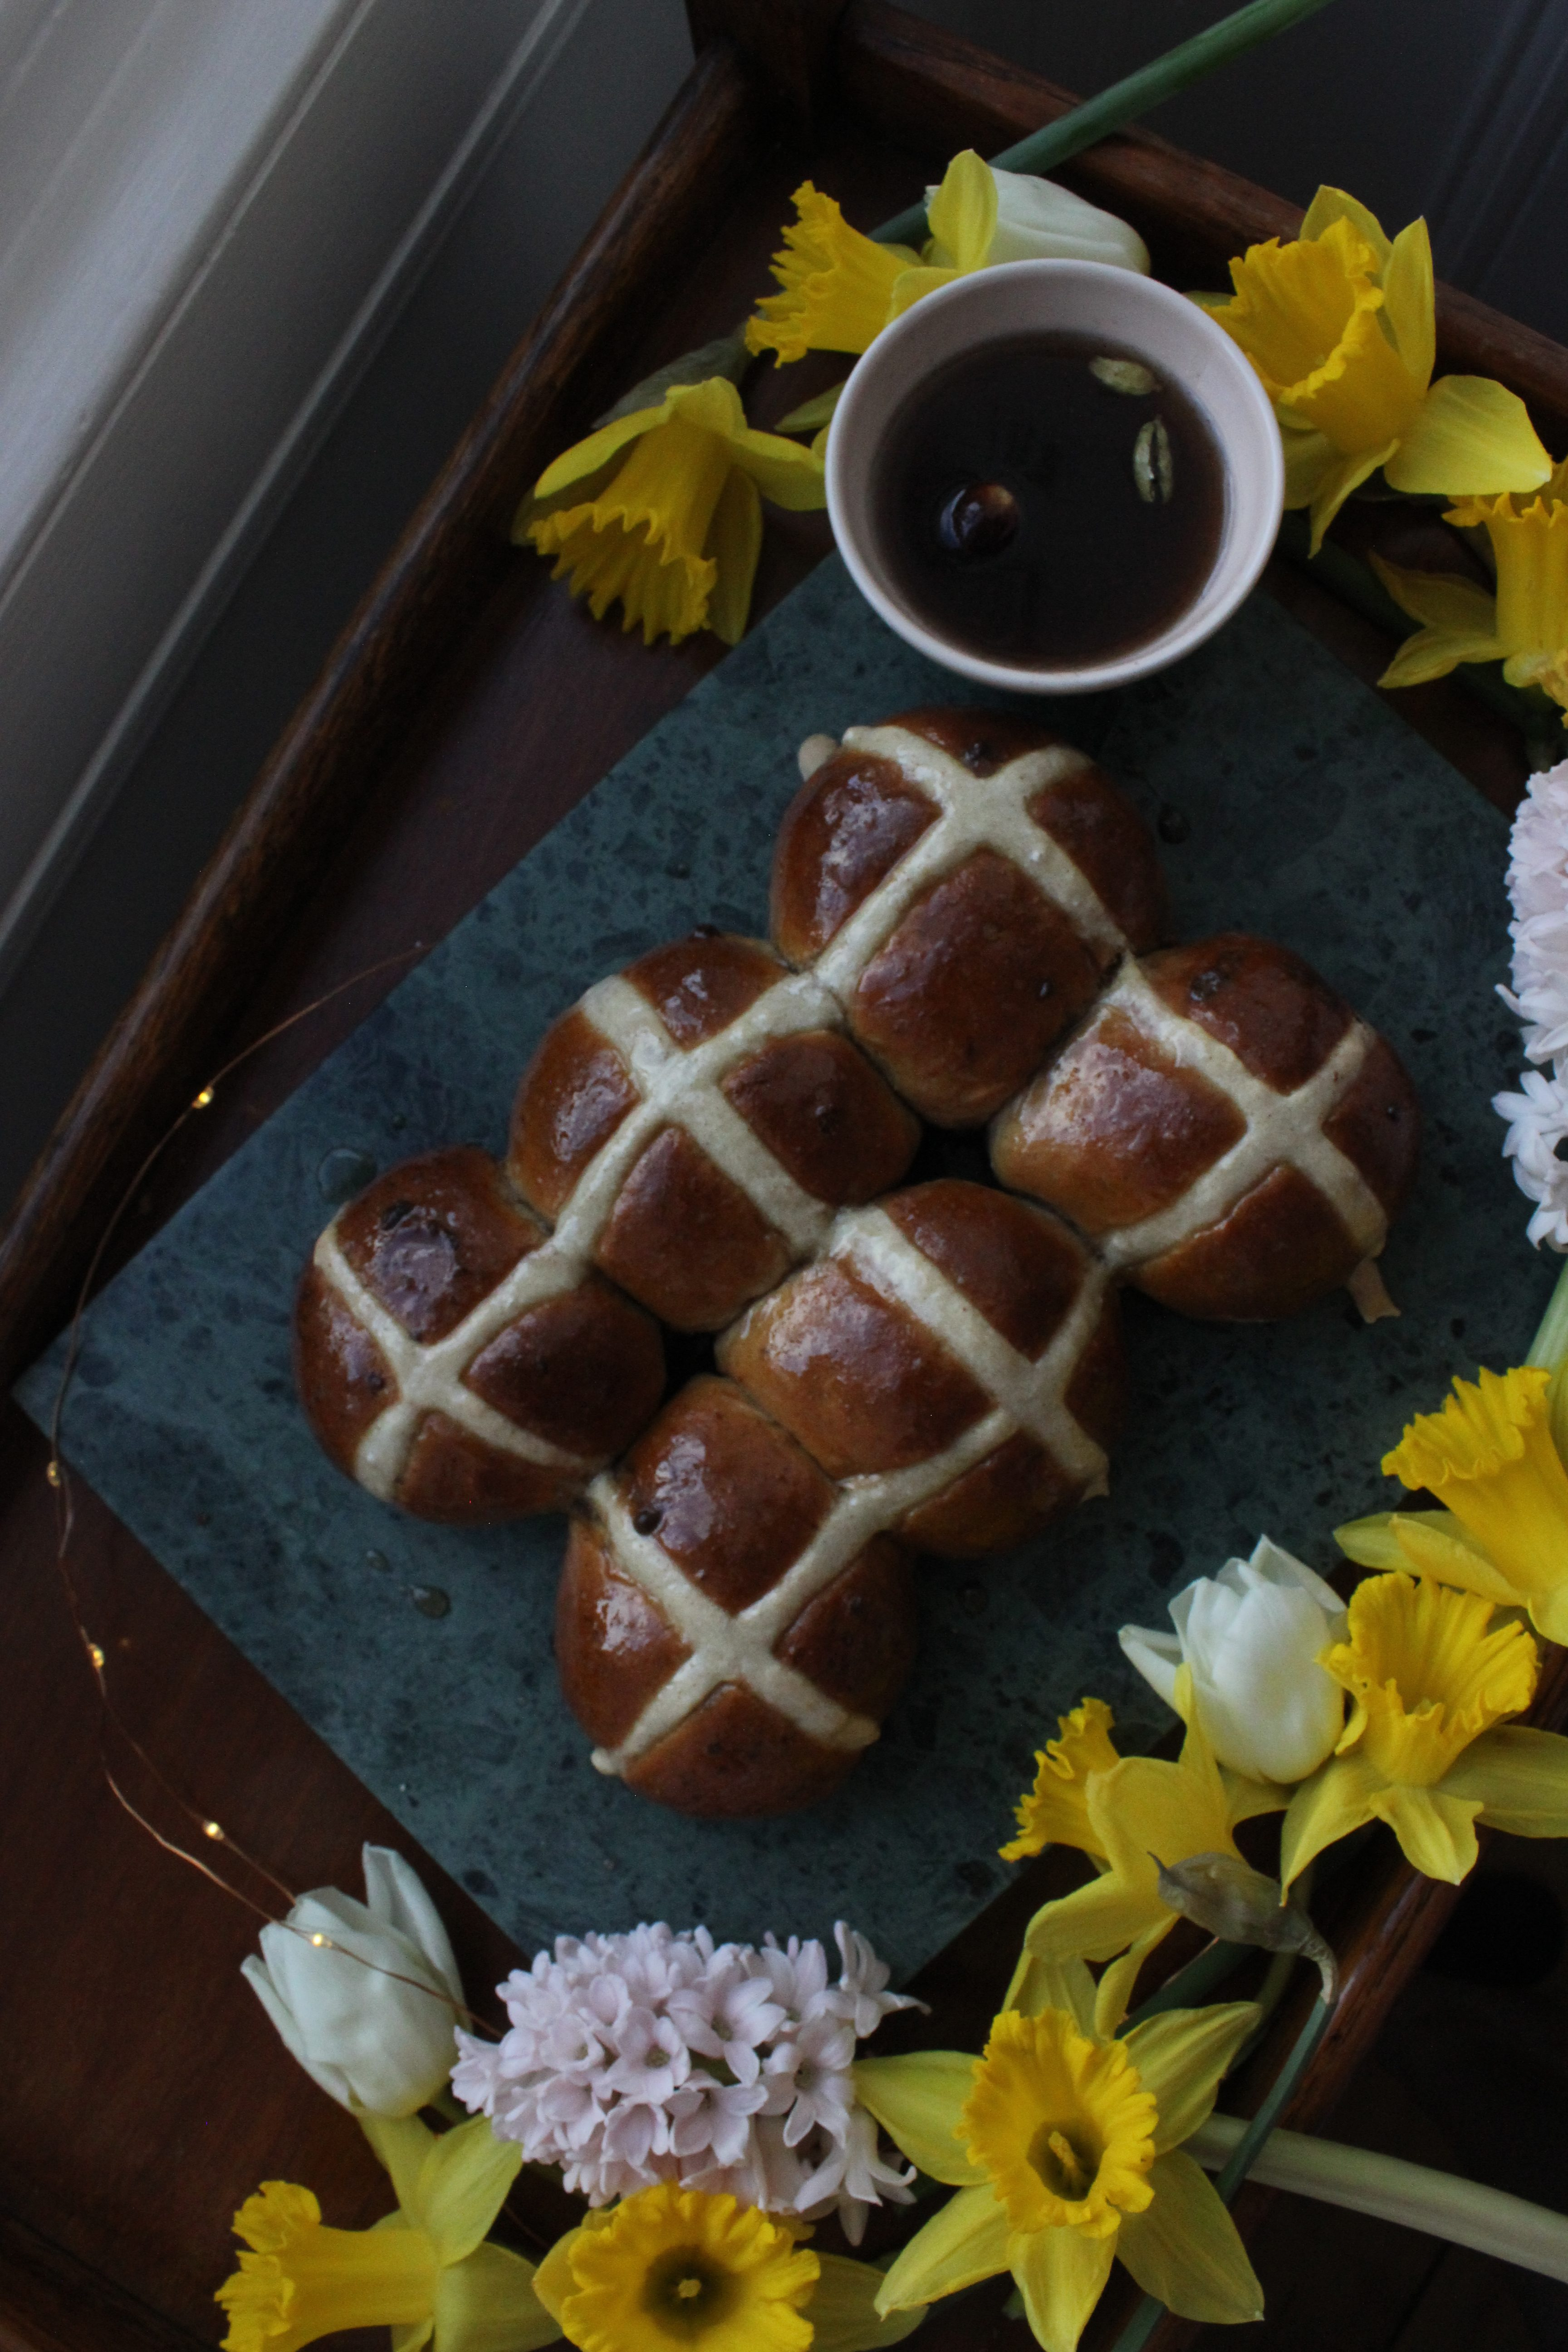 Chocolate and Cardamom Hot Cross Buns